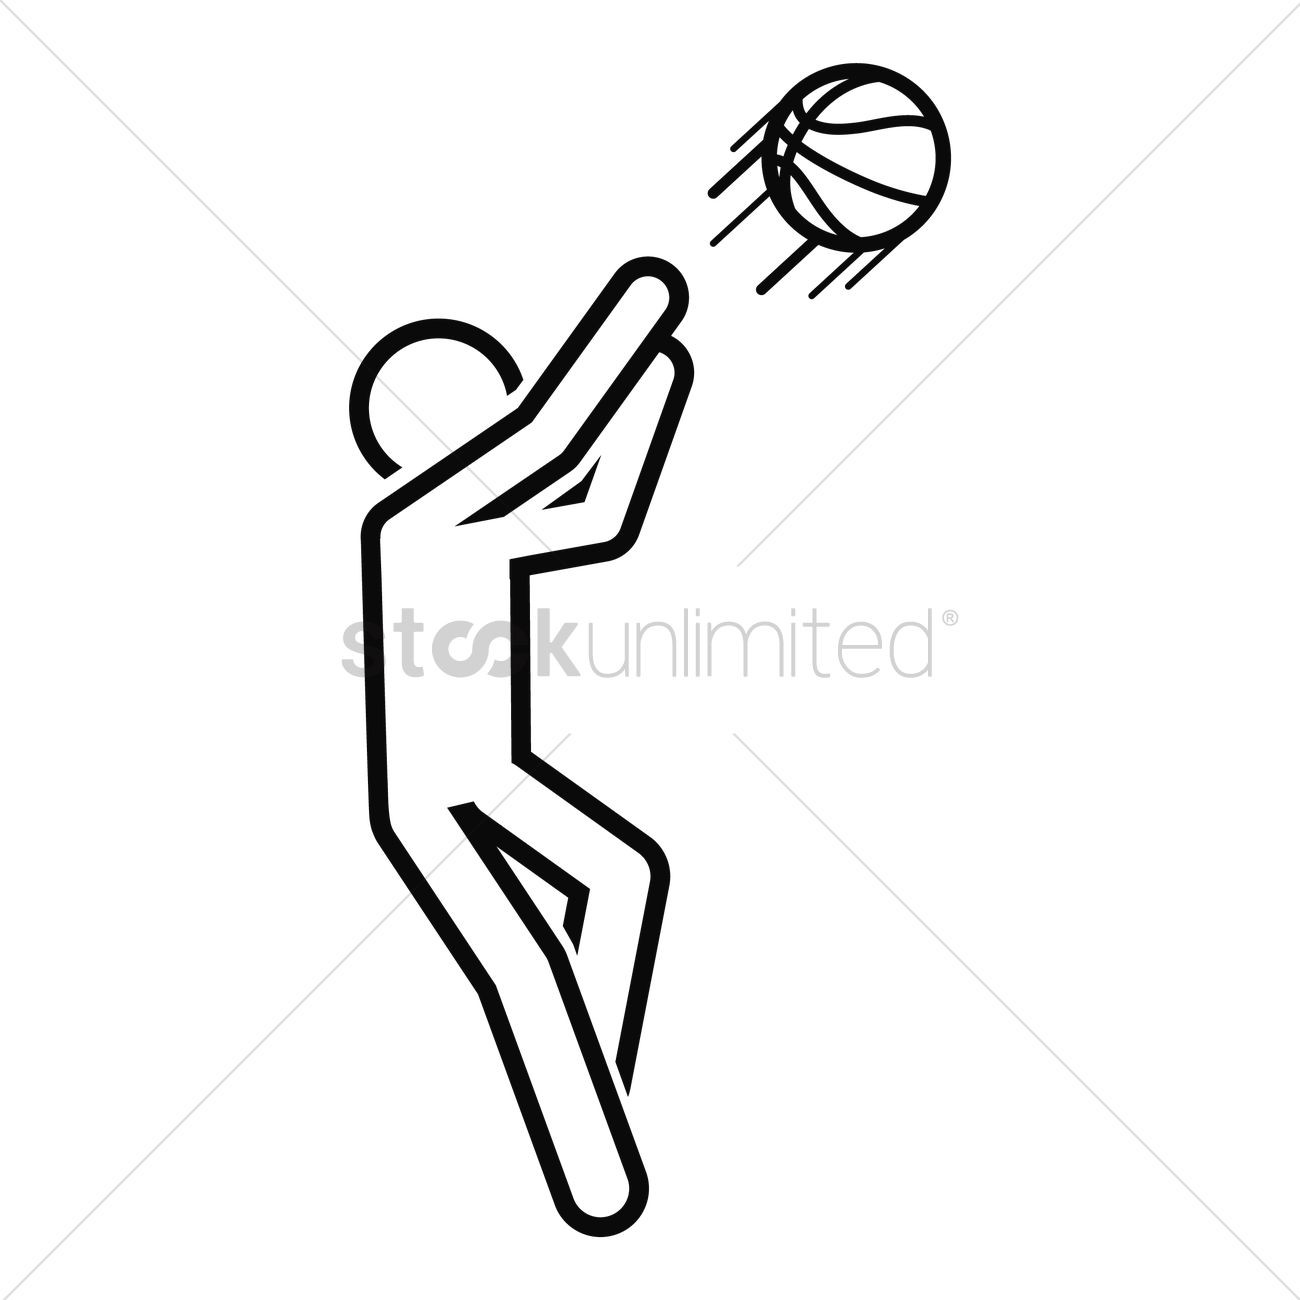 1300x1300 How To Draw A Basketball Player Chris Gooding On Twitter Rough